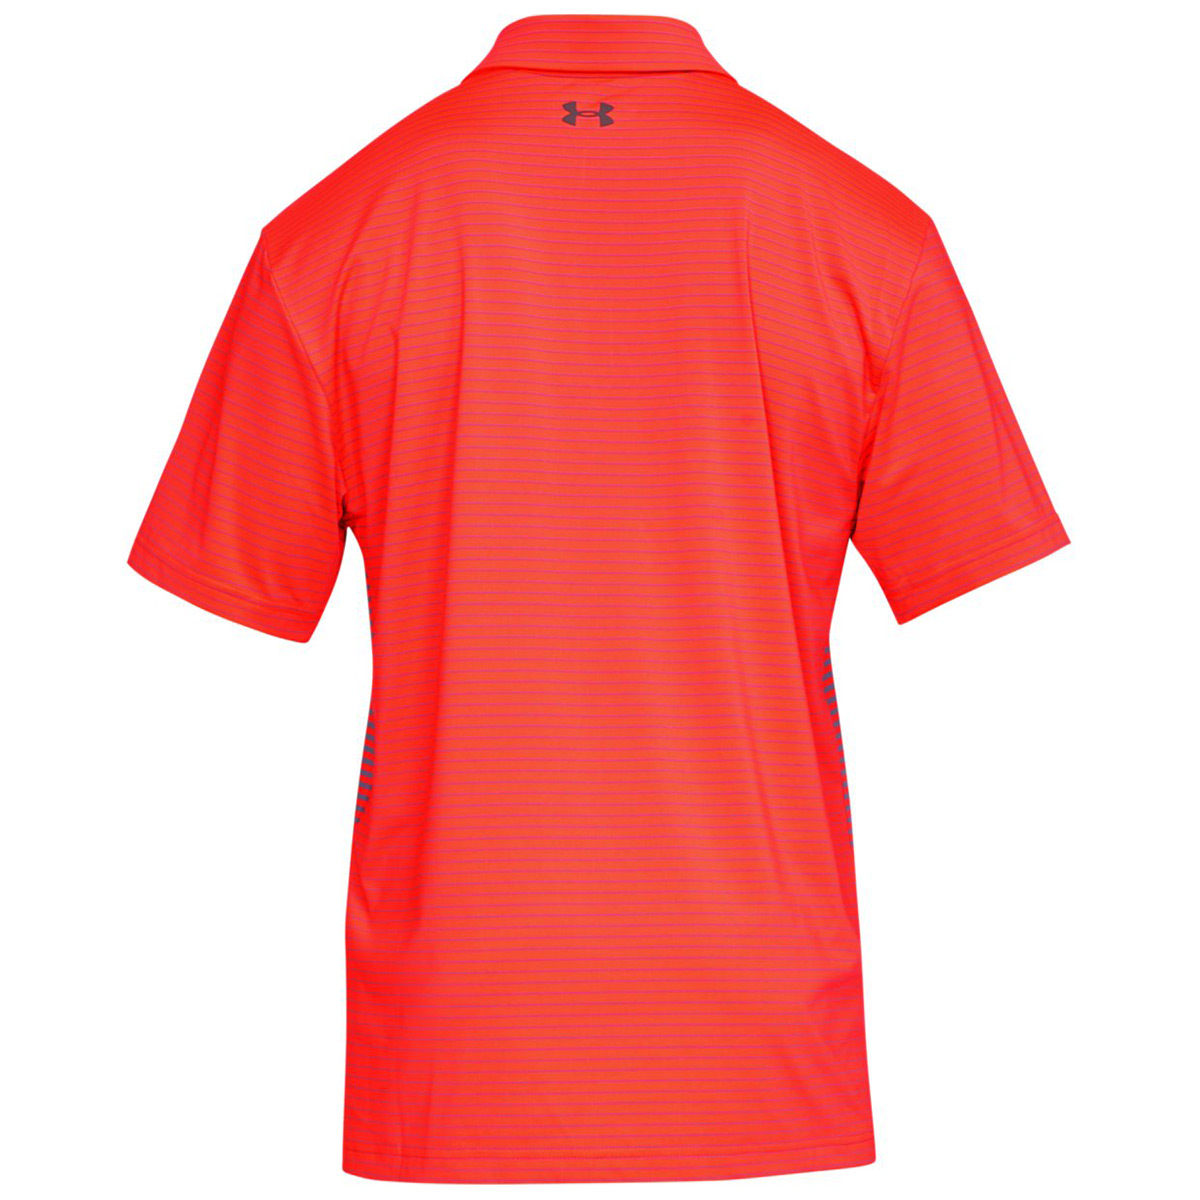 Under-Armour-Mens-UA-Playoff-Performance-Golf-Polo-Shirt-42-OFF-RRP thumbnail 30